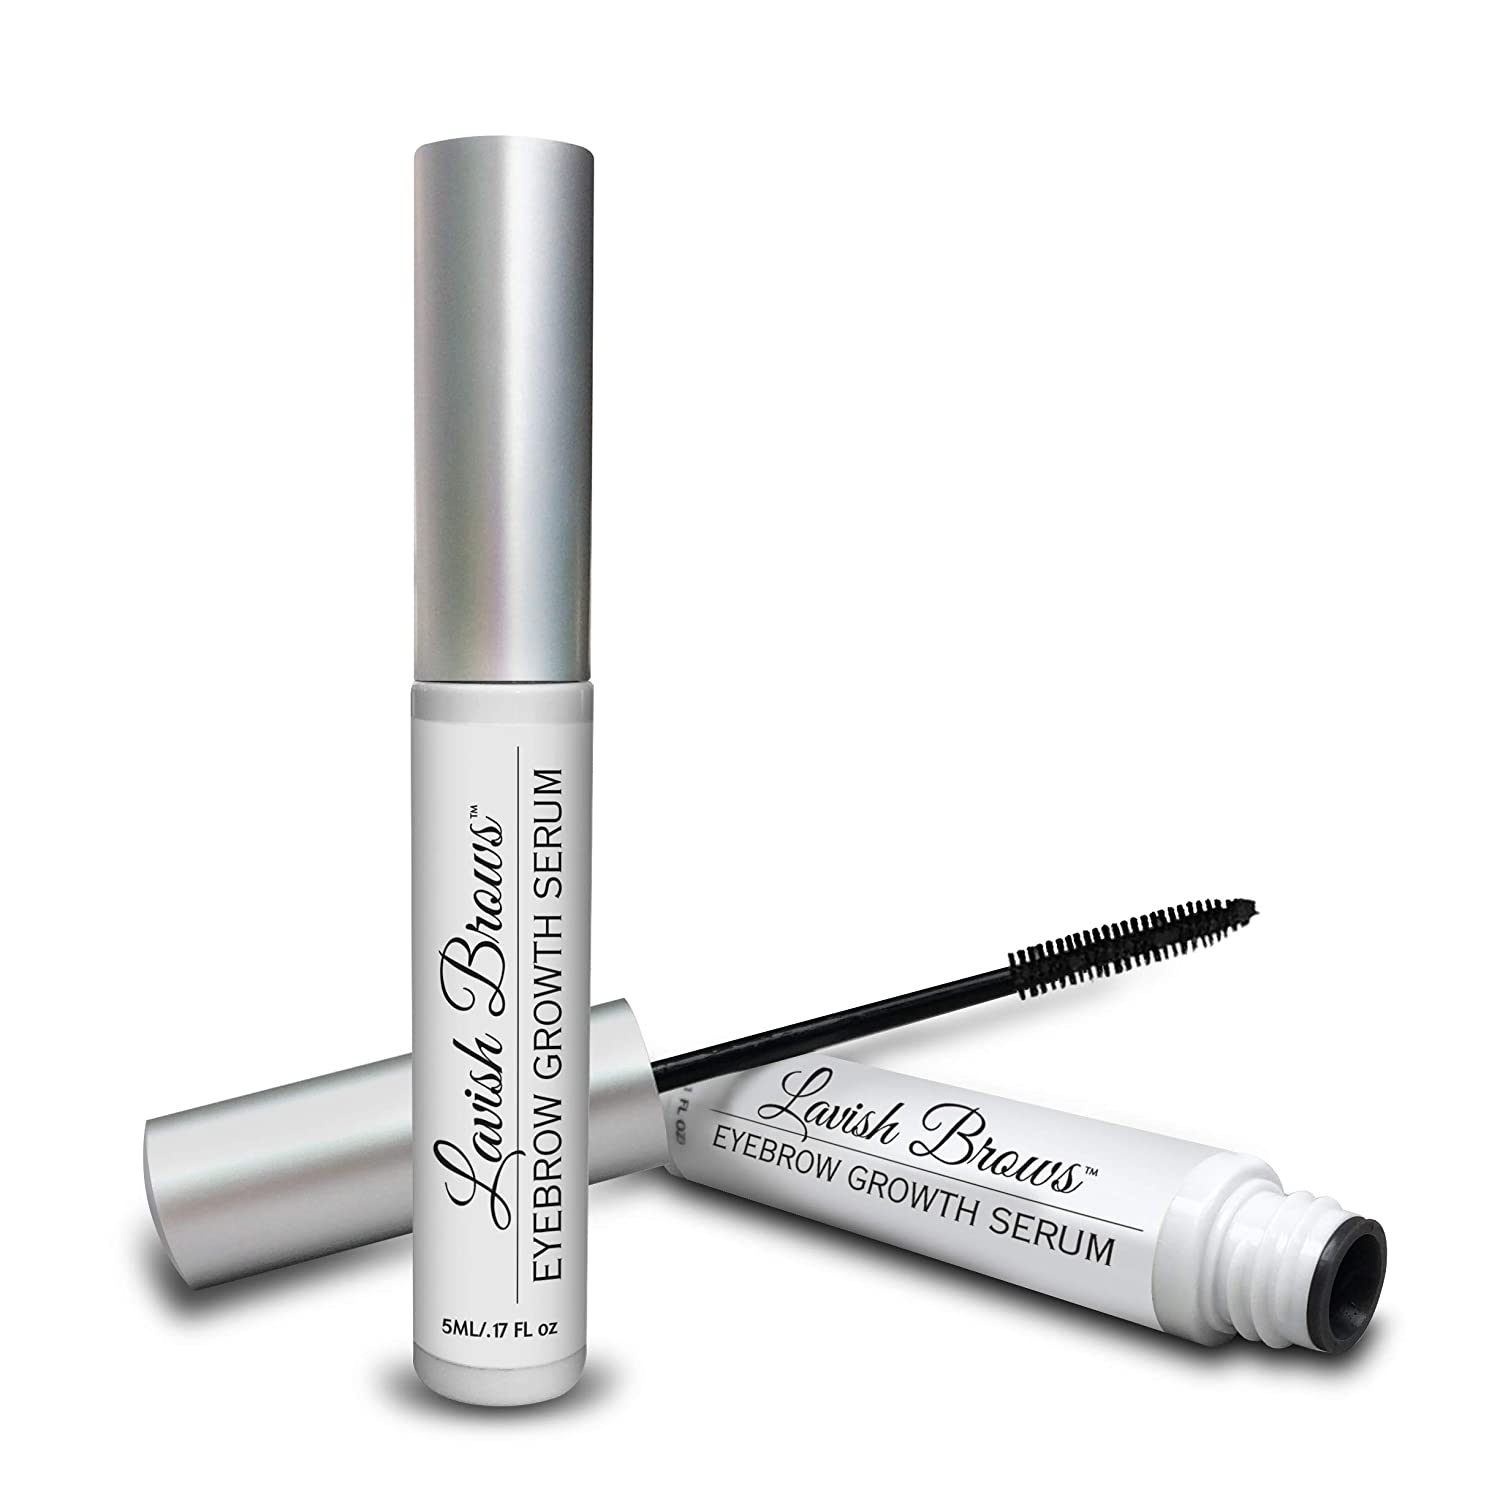 Pronexa Hairgenics Lavish Brows – Eyebrow Growth Enhancer Serum with Biotin, Castor Oil & Natural Growth Peptides for Long, Thick Looking Eyebrows! Dermatologist Certified & Hypoallergenic.